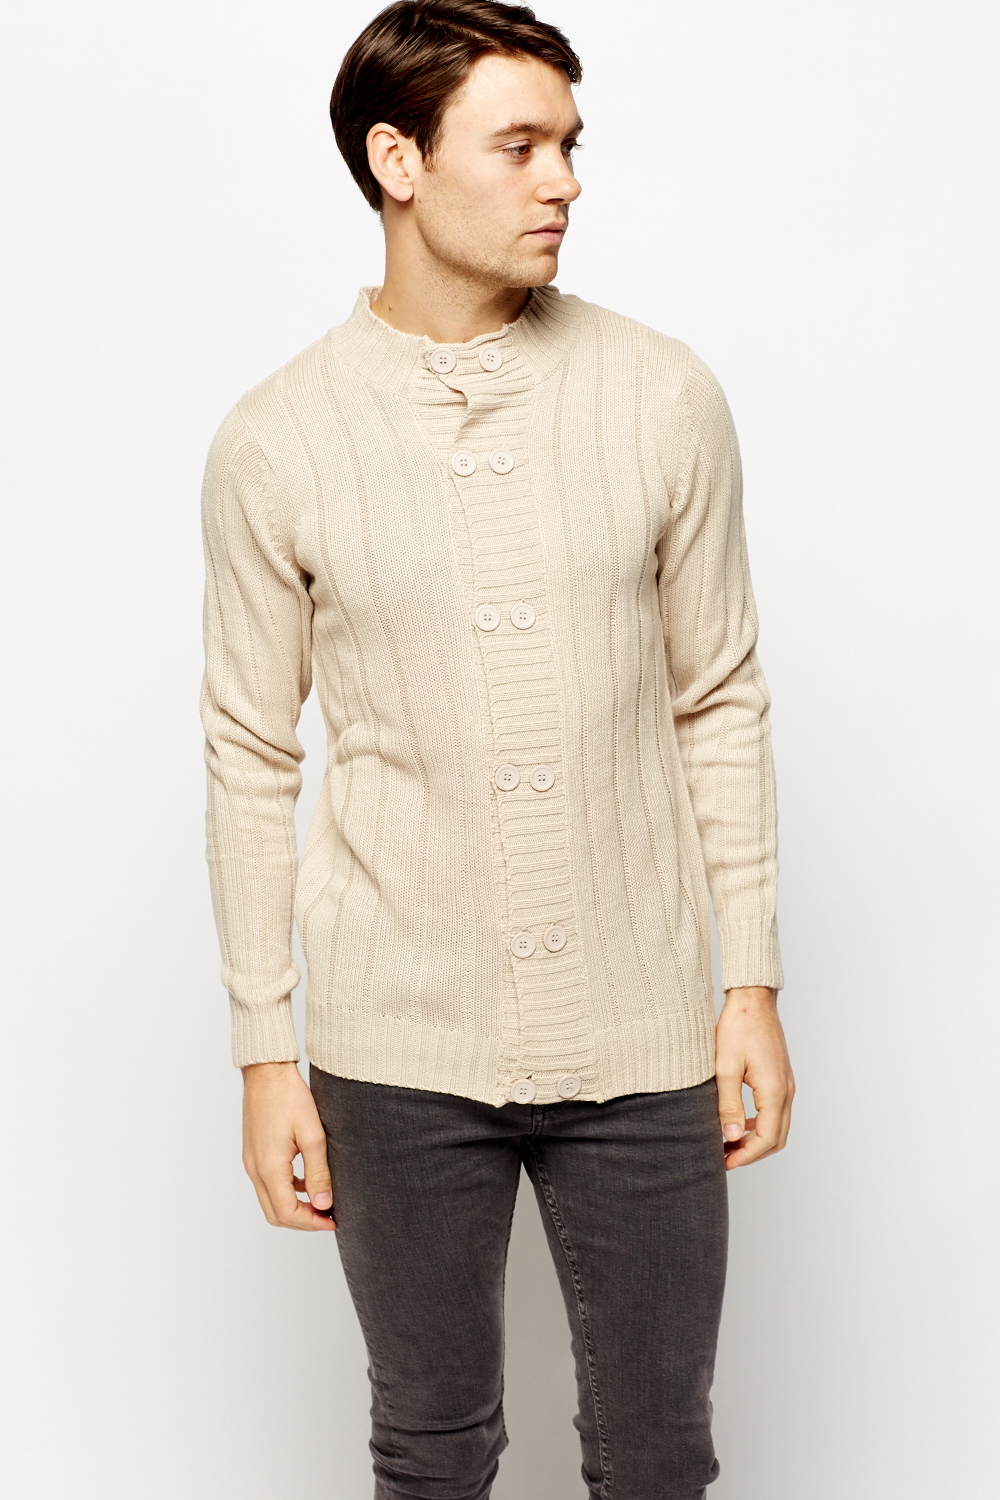 Ribbed High Neck Double Breasted Cardigan - Beige - Just £5